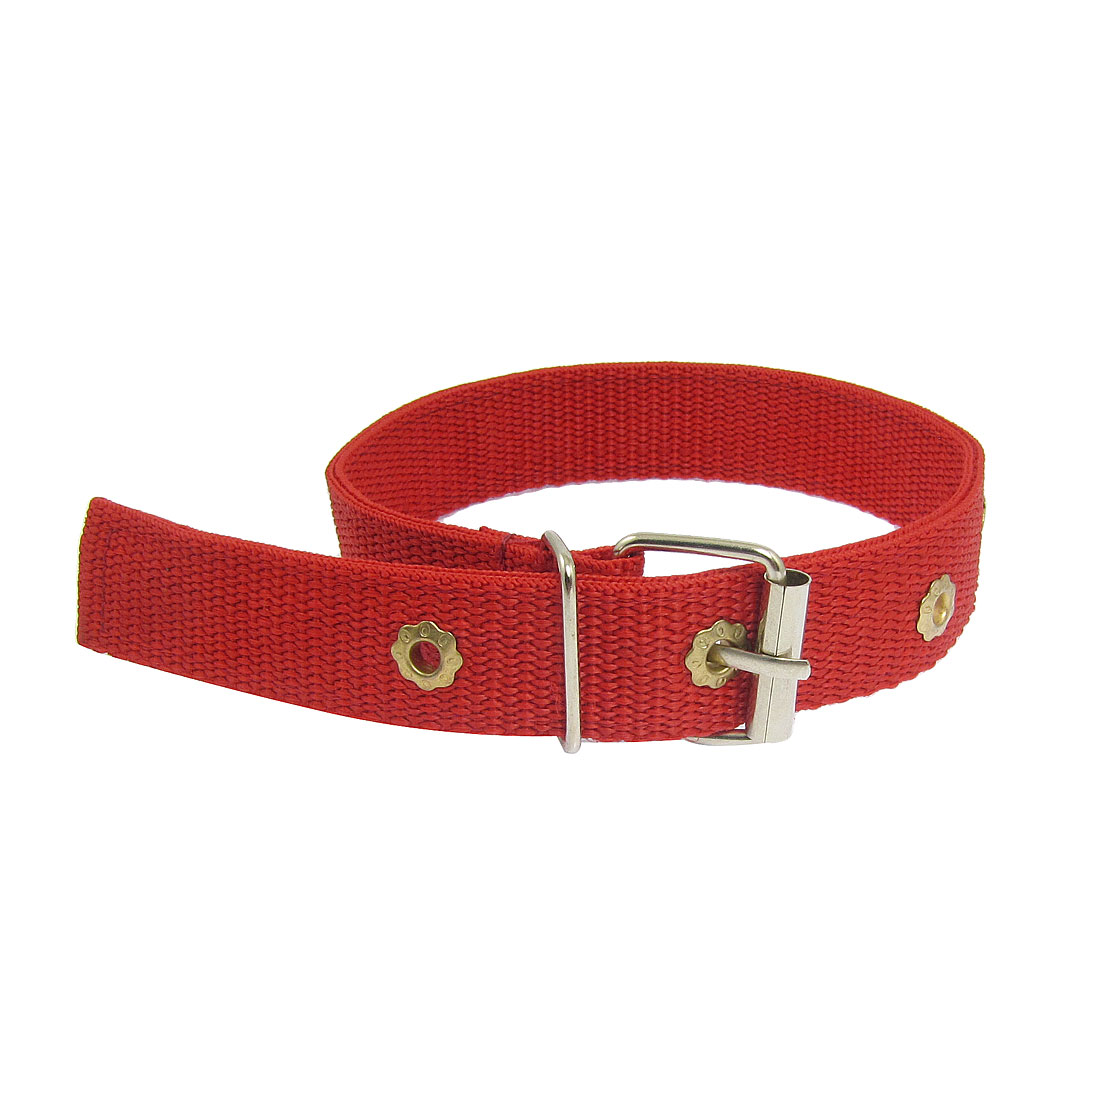 "Metal Buckle Guardian Red Nylon Pet Dog Adjustable Collar 18.9"" Length"